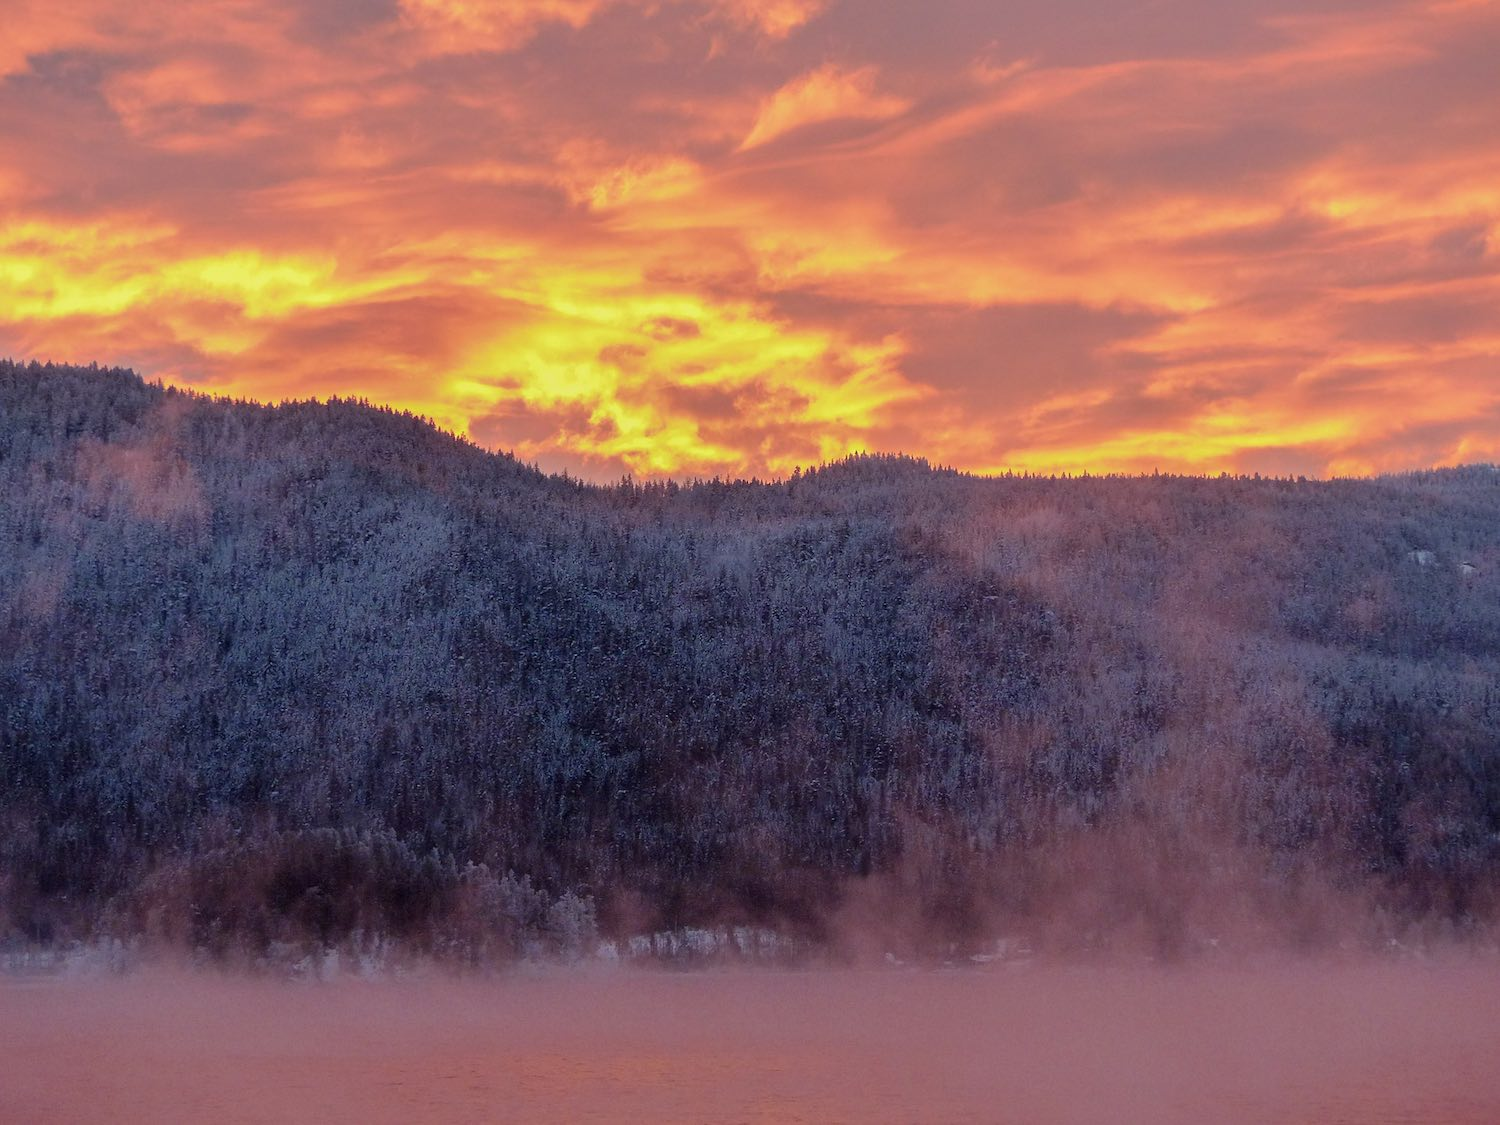 Winter mornings can be a lens into an enchanting landscape